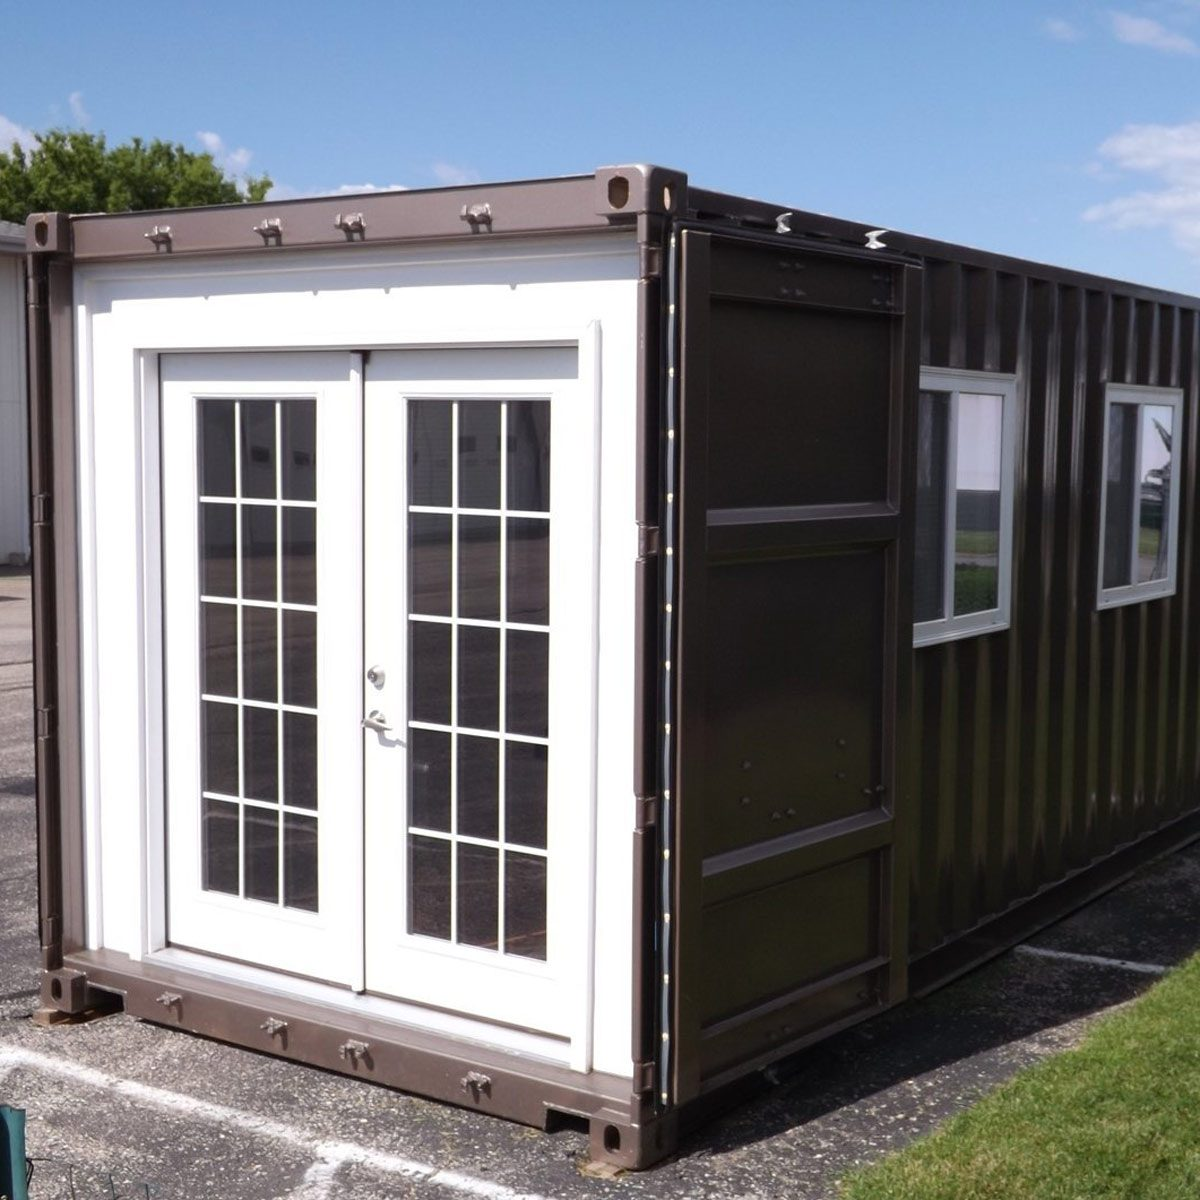 Best Kitchen Gallery: Amazon Now Sells Shipping Container Tiny Homes Family Handyman of Shipping Container Tiny Home on rachelxblog.com